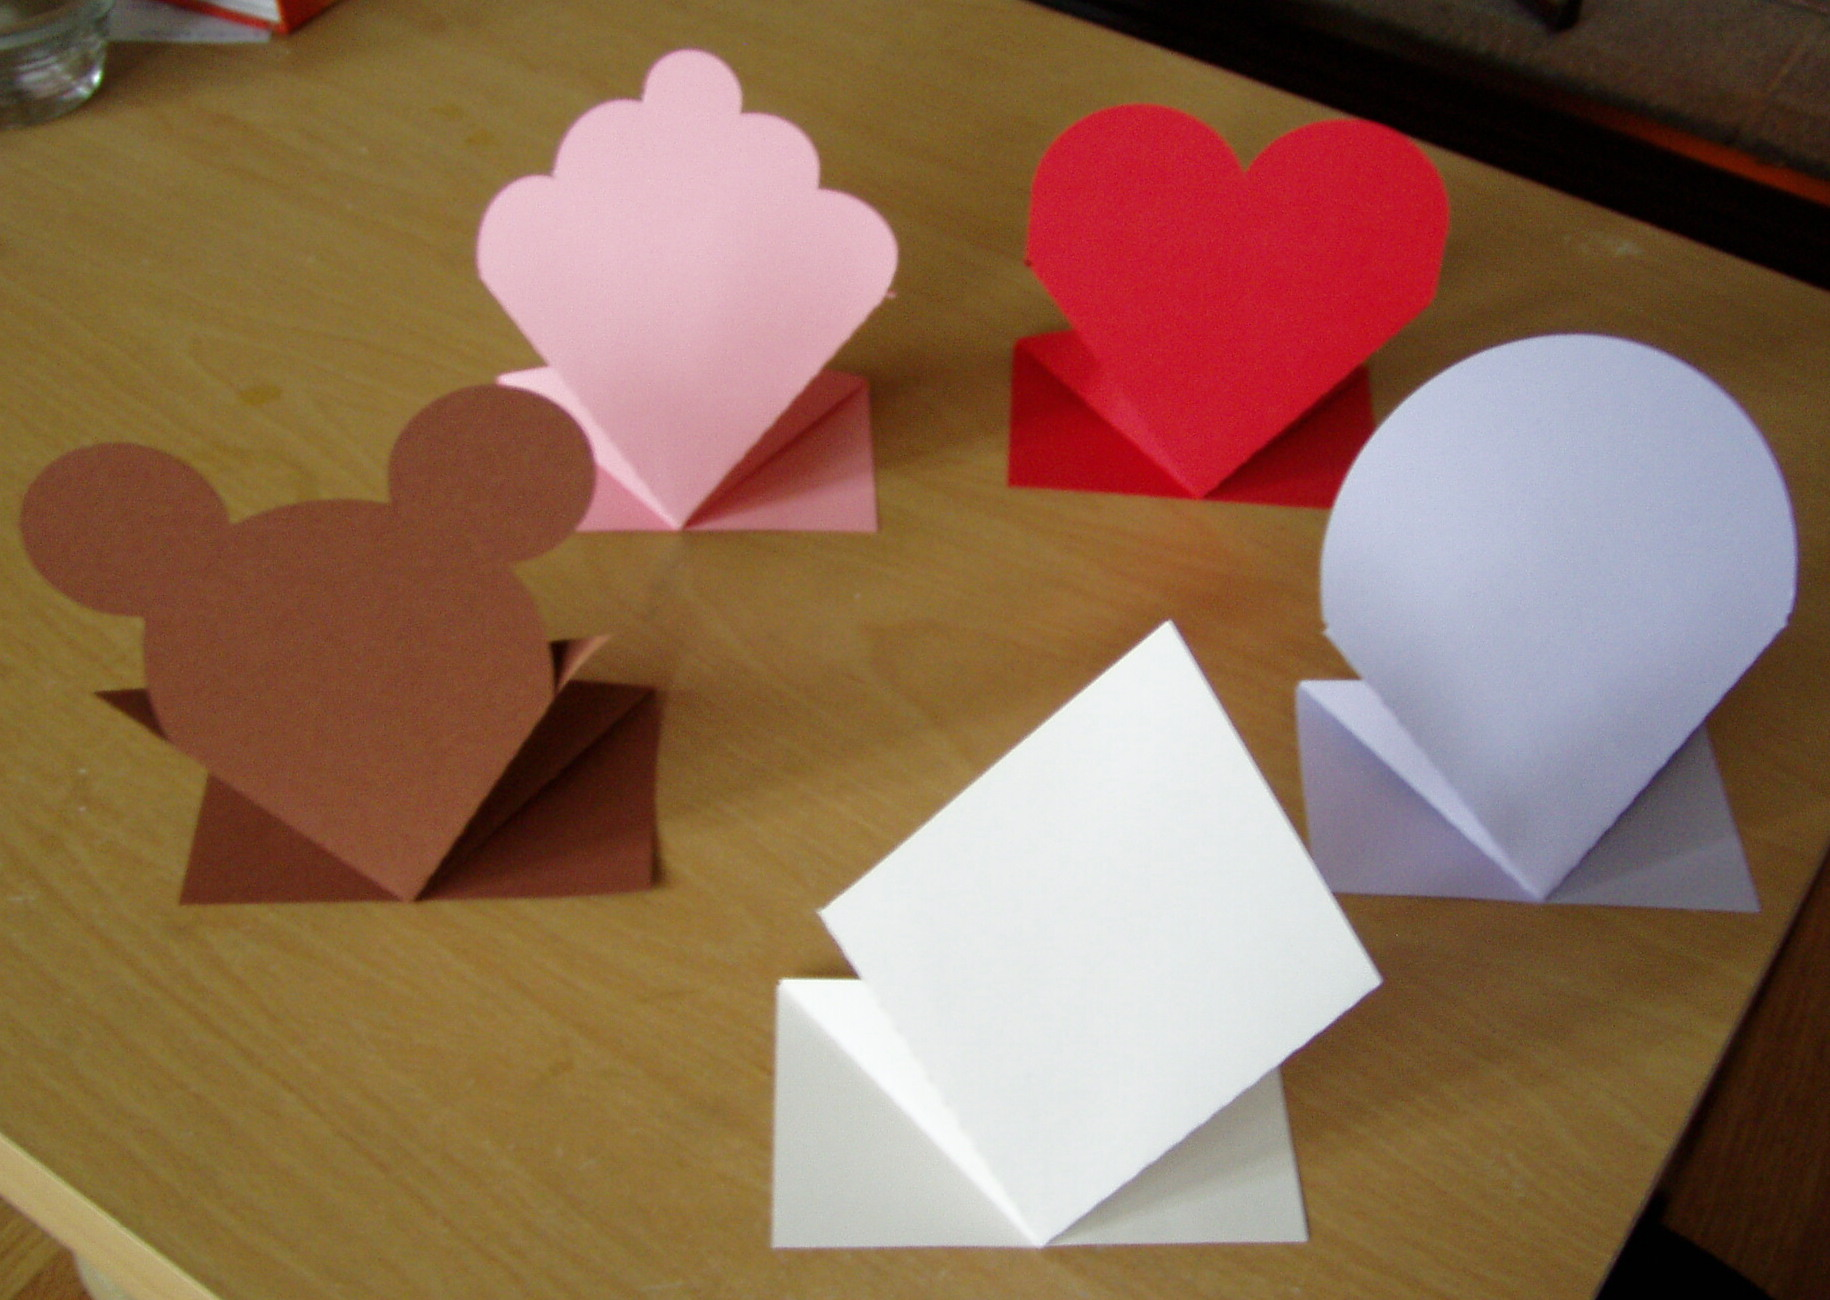 Spring bounce up card templates